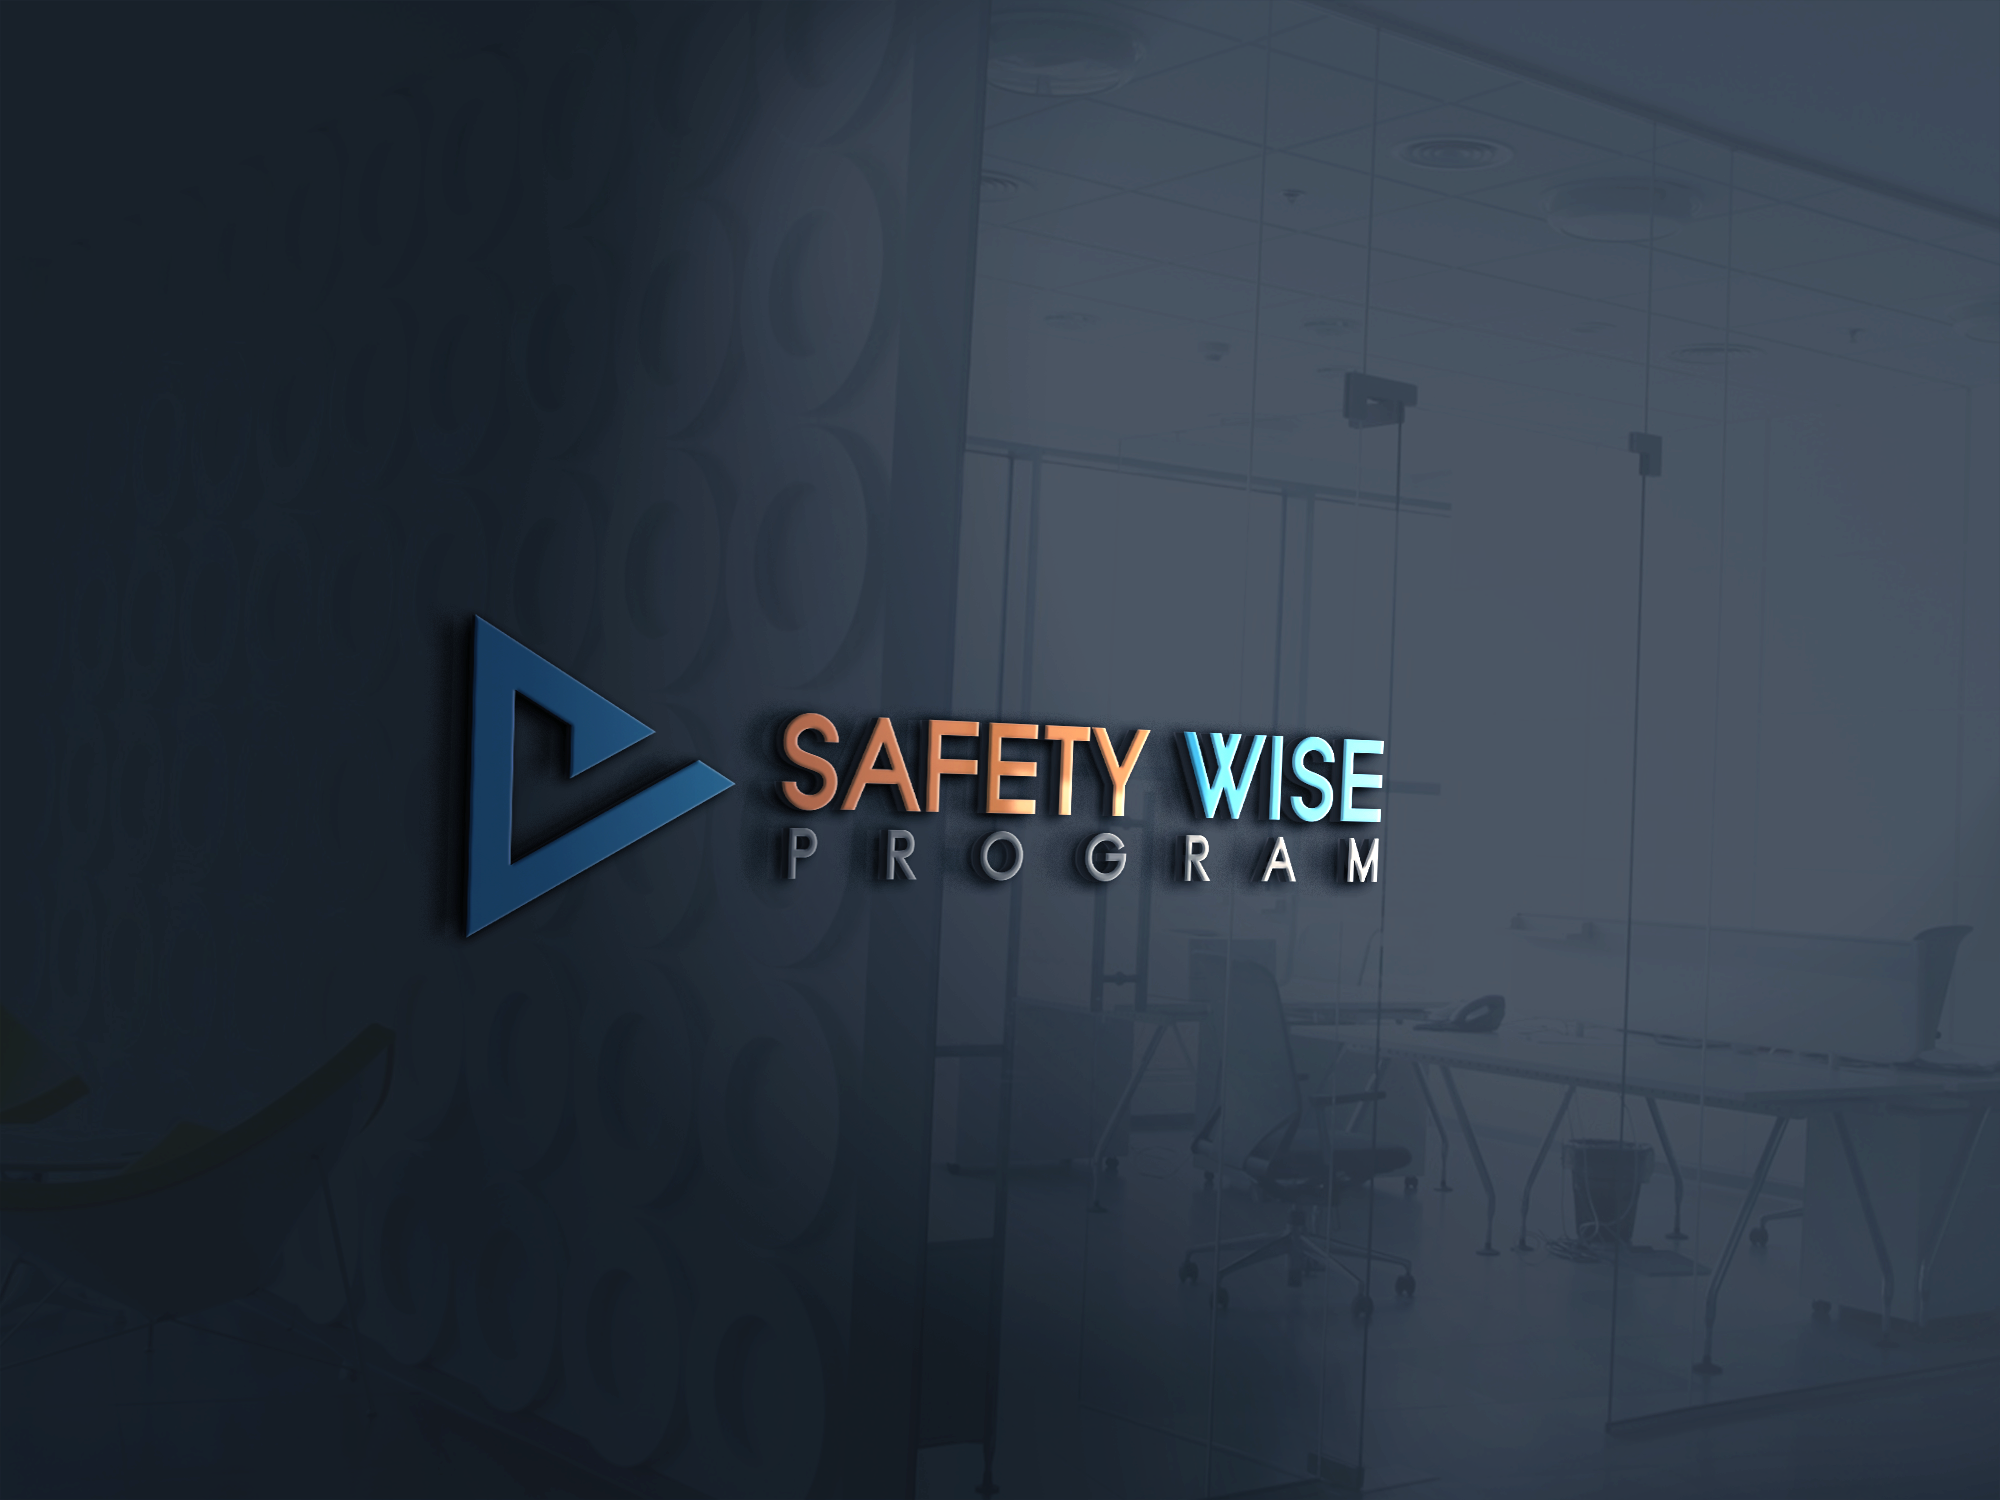 Logo Design by Prohor Ghagra - Entry No. 220 in the Logo Design Contest New Logo Design for Safety Wise Program.